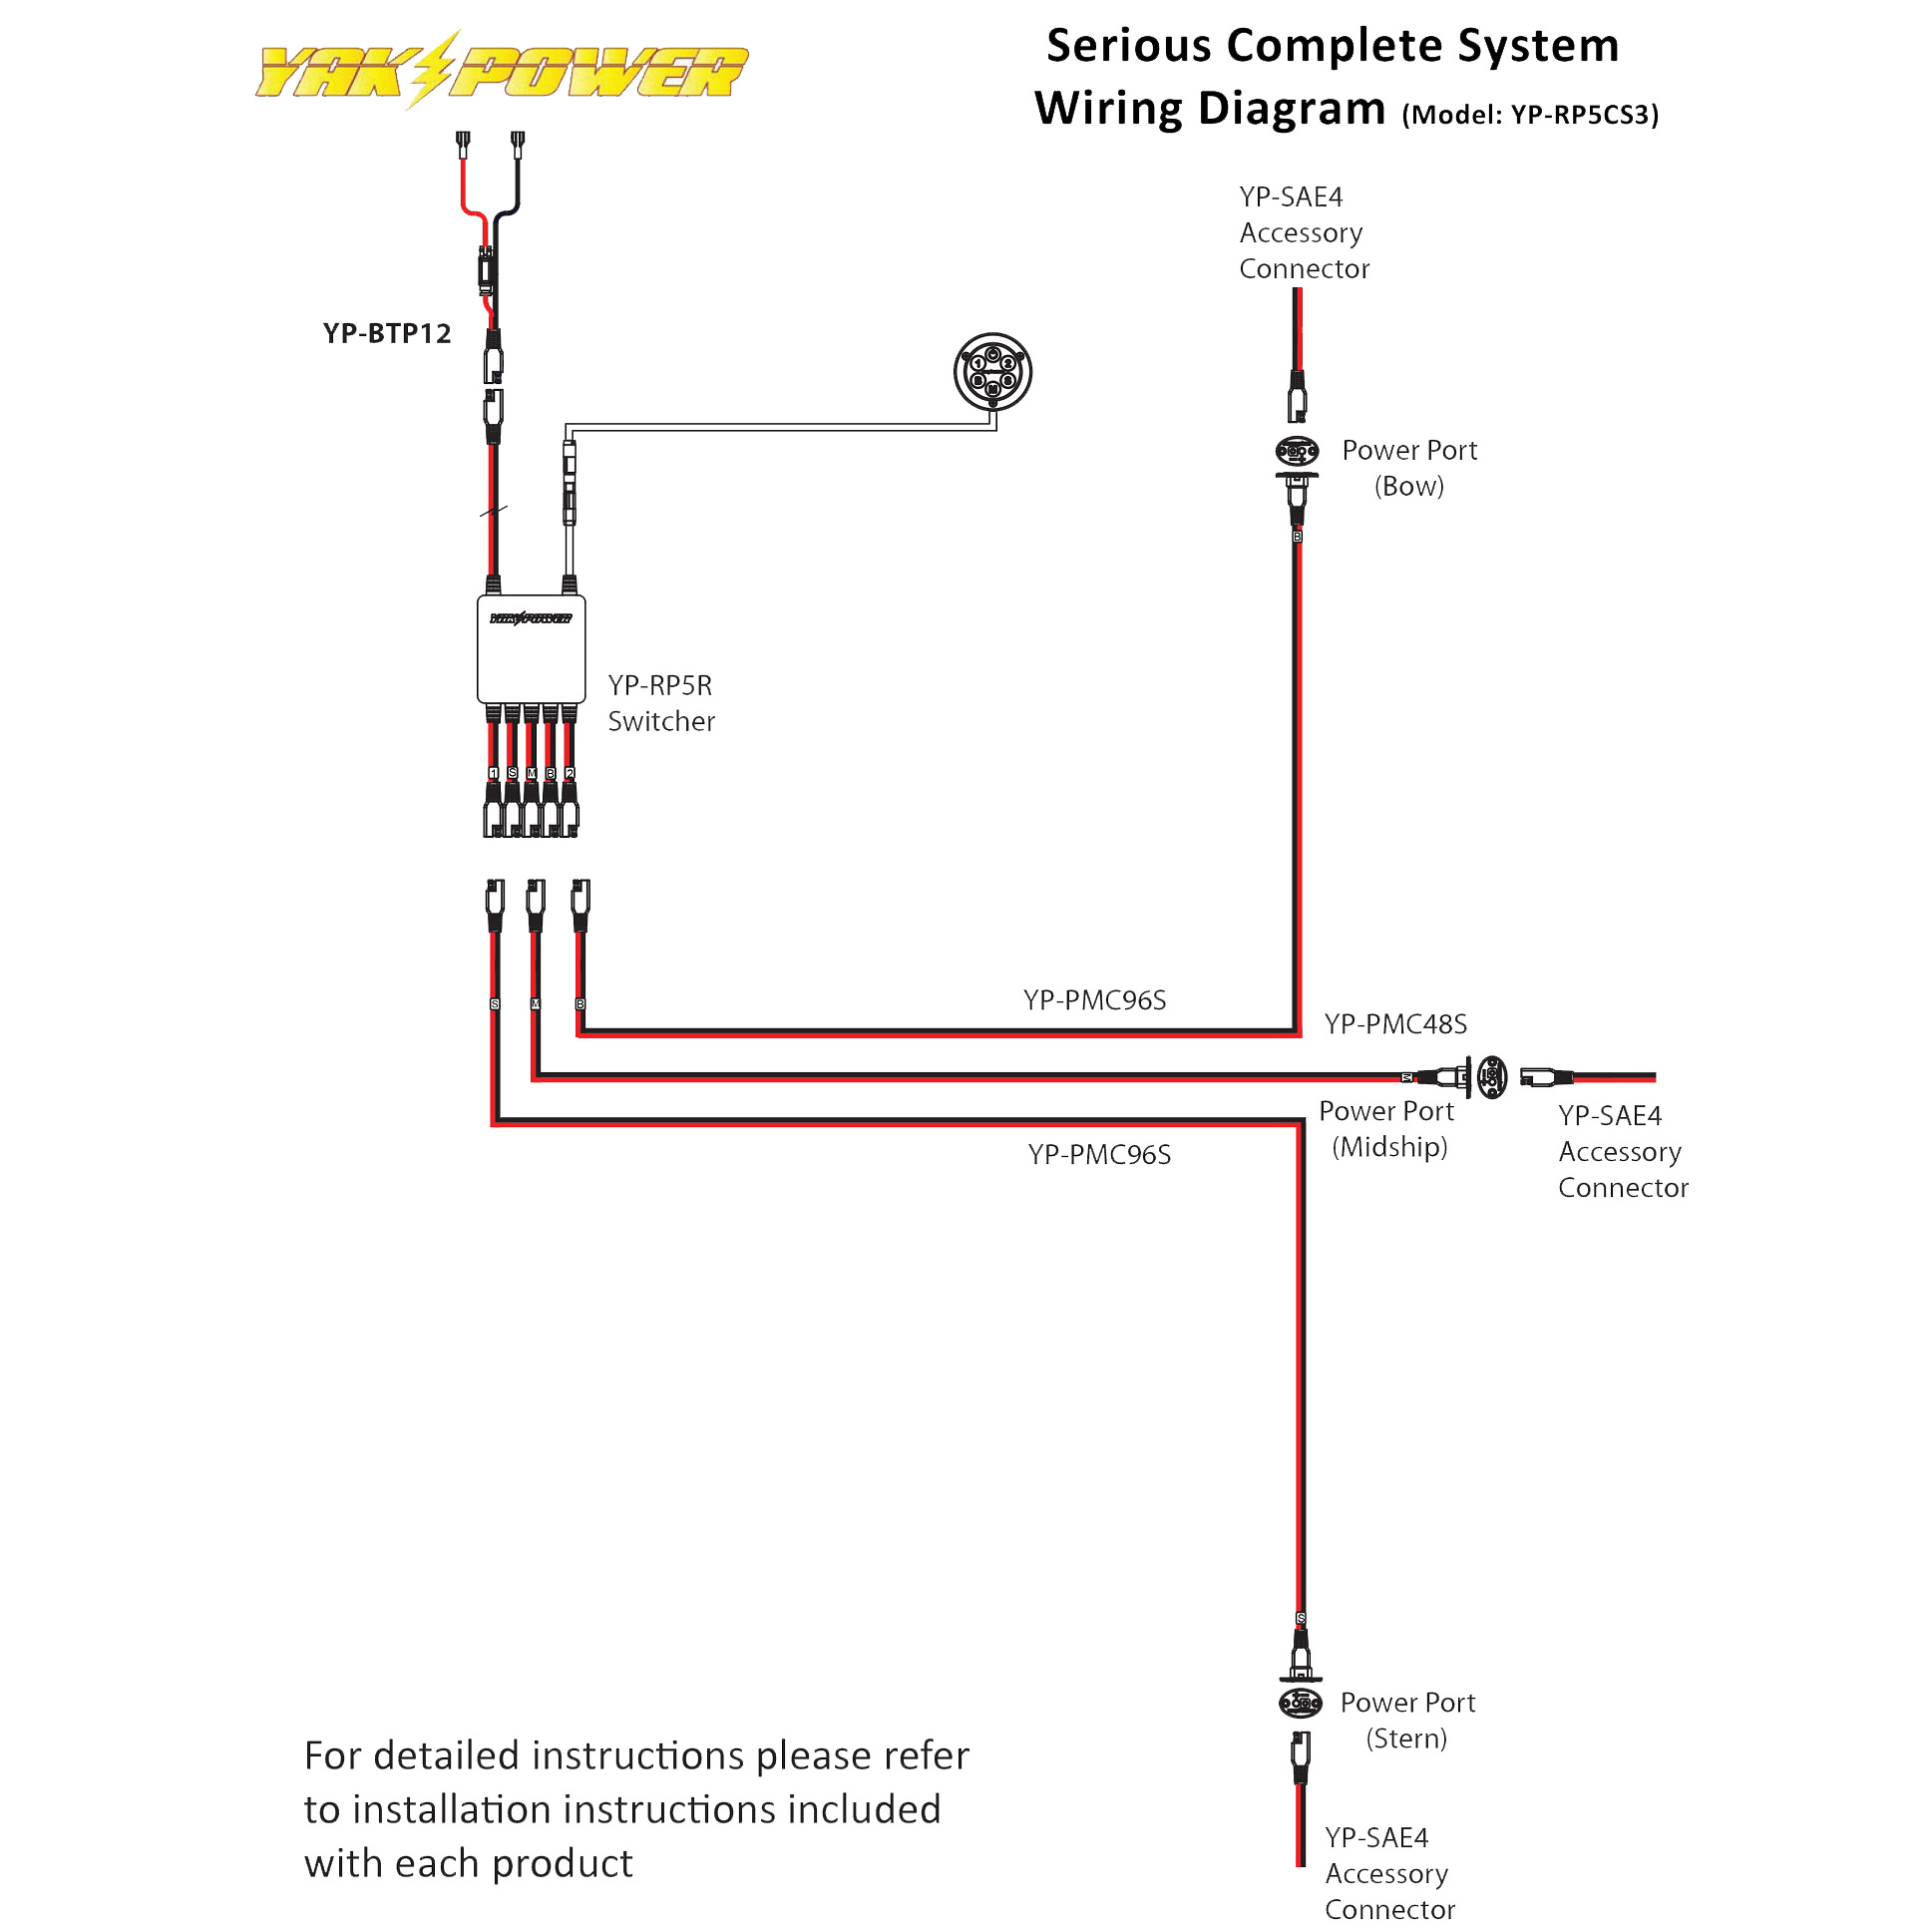 Yp Rp5cs3 Serious Complete System Yak Power Wiring Diagram Model T 49f